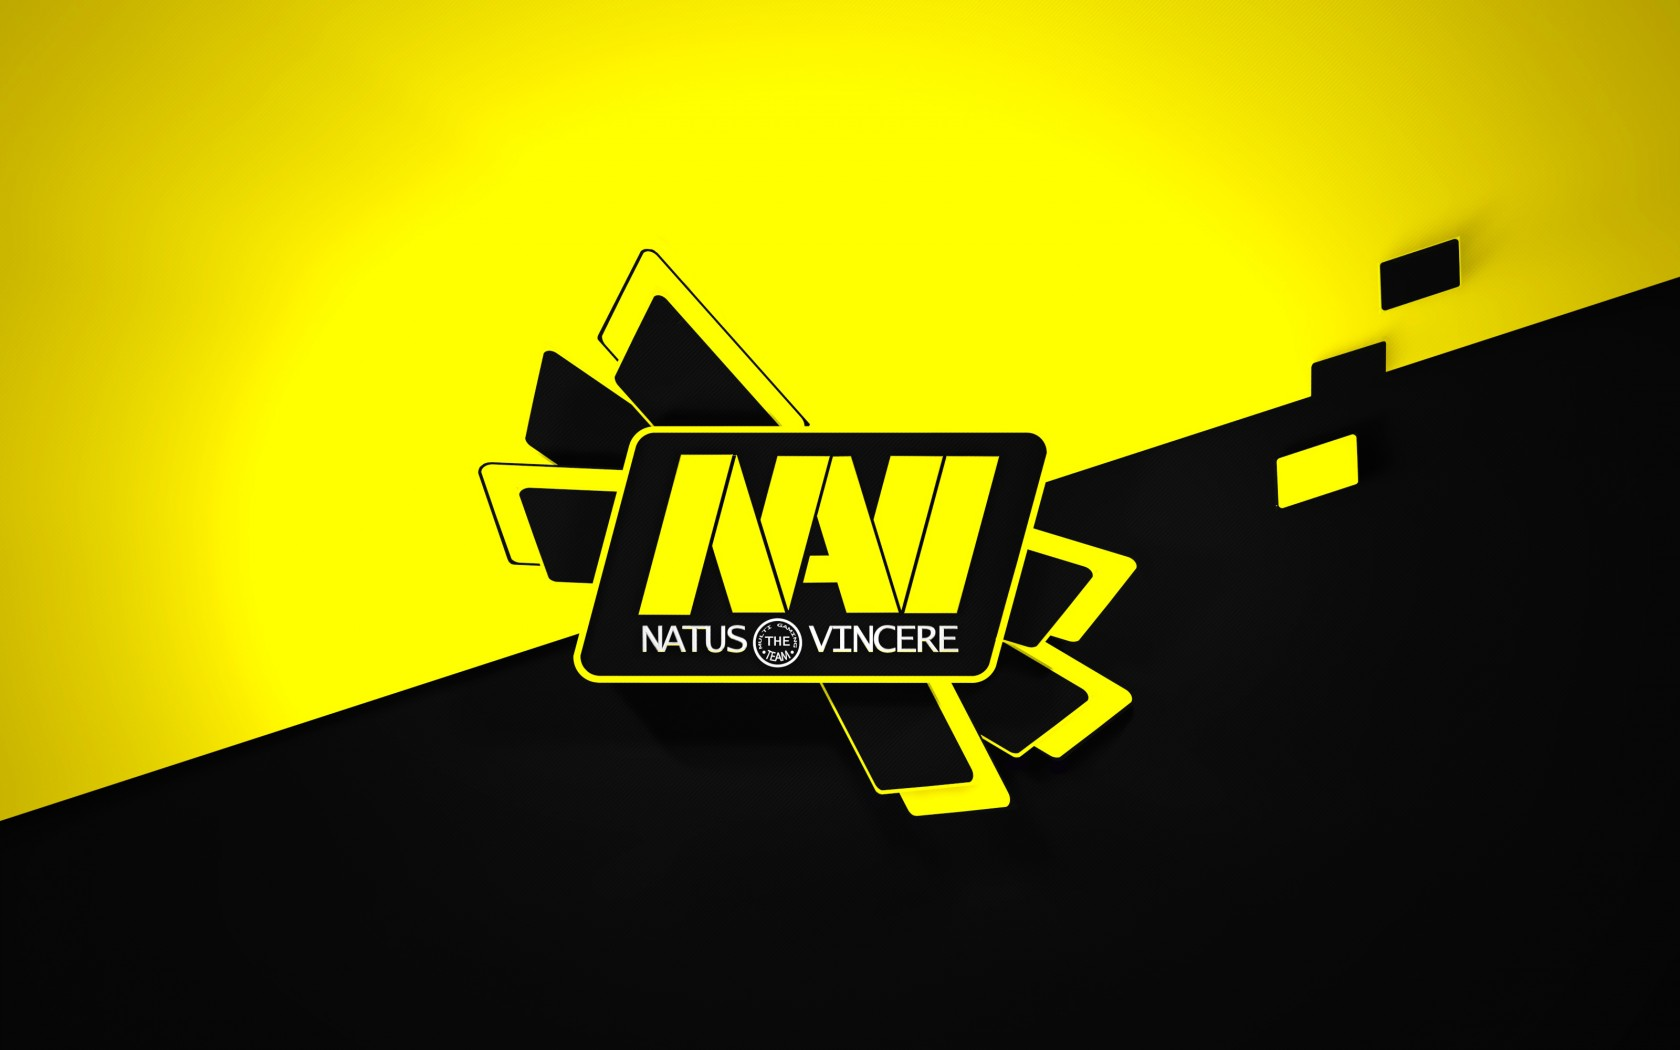 3d Animation Wallpaper For Pc Download Navi Natus Vincere Pc Wallpaper Wallpapers Dota 2